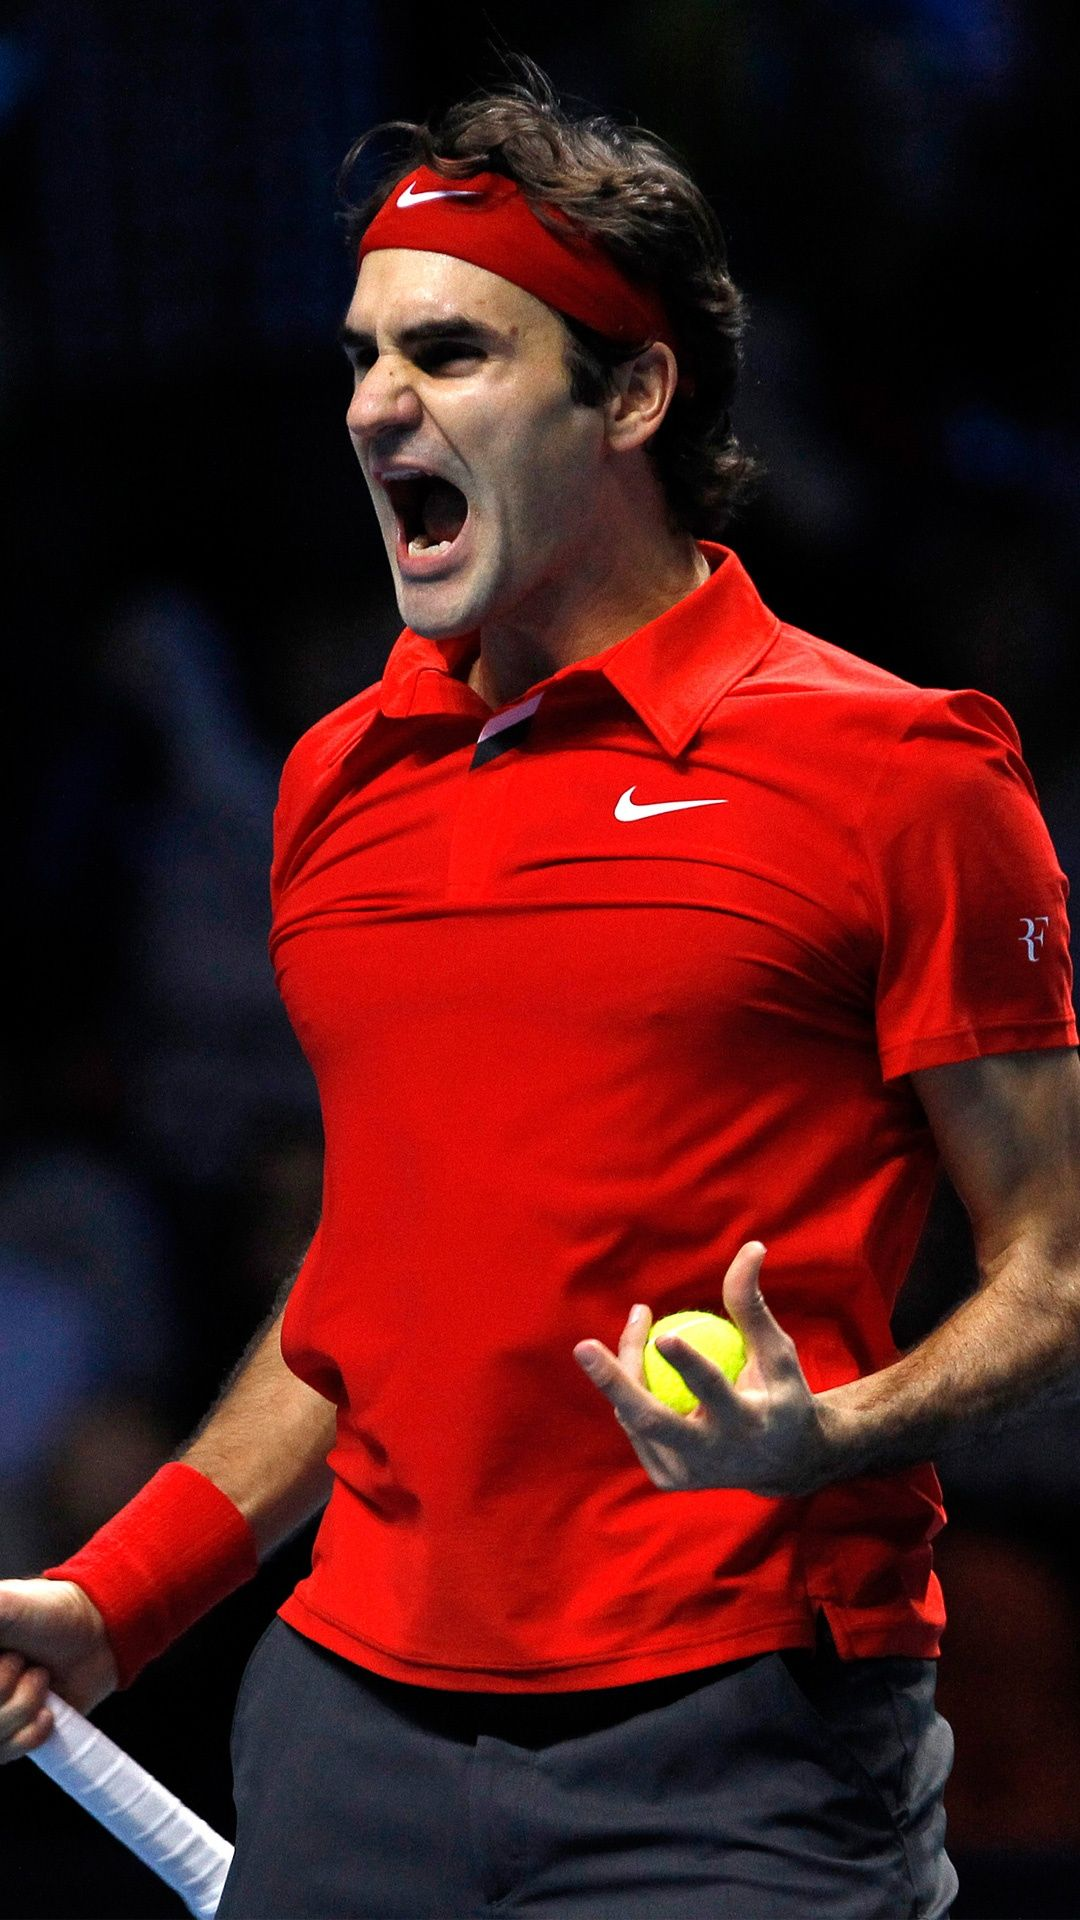 wallpaper Roger Federer Wallpapers Sports Tennis tournaments 1080x1920